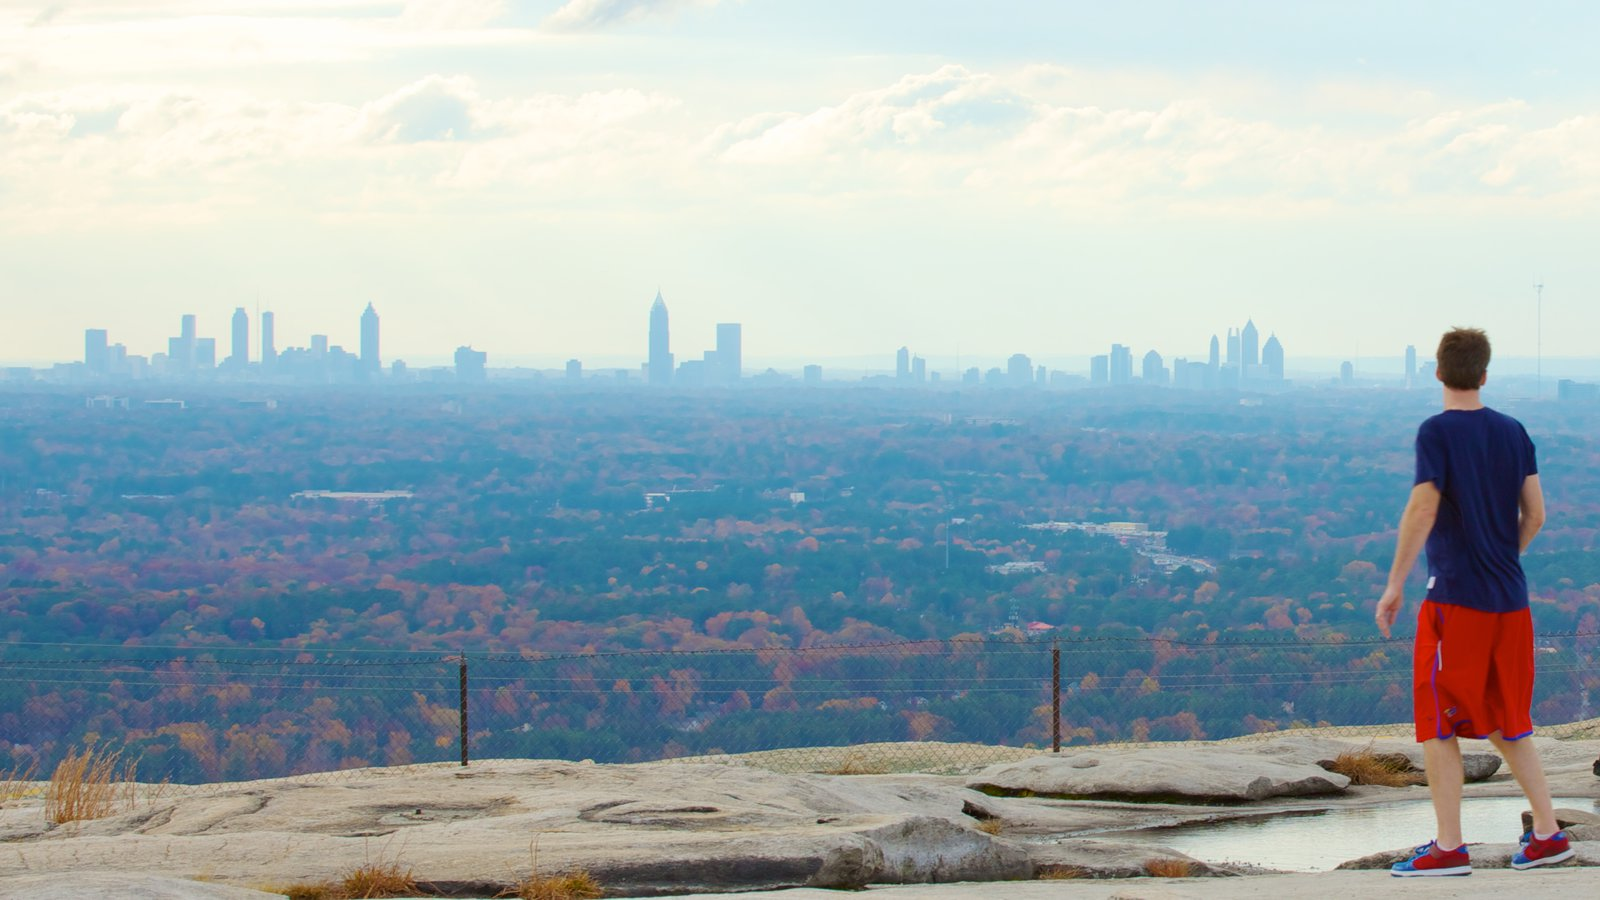 Zoo Atlanta Atlanta, Landscape Pictures: View Images of Stone Mountain Park